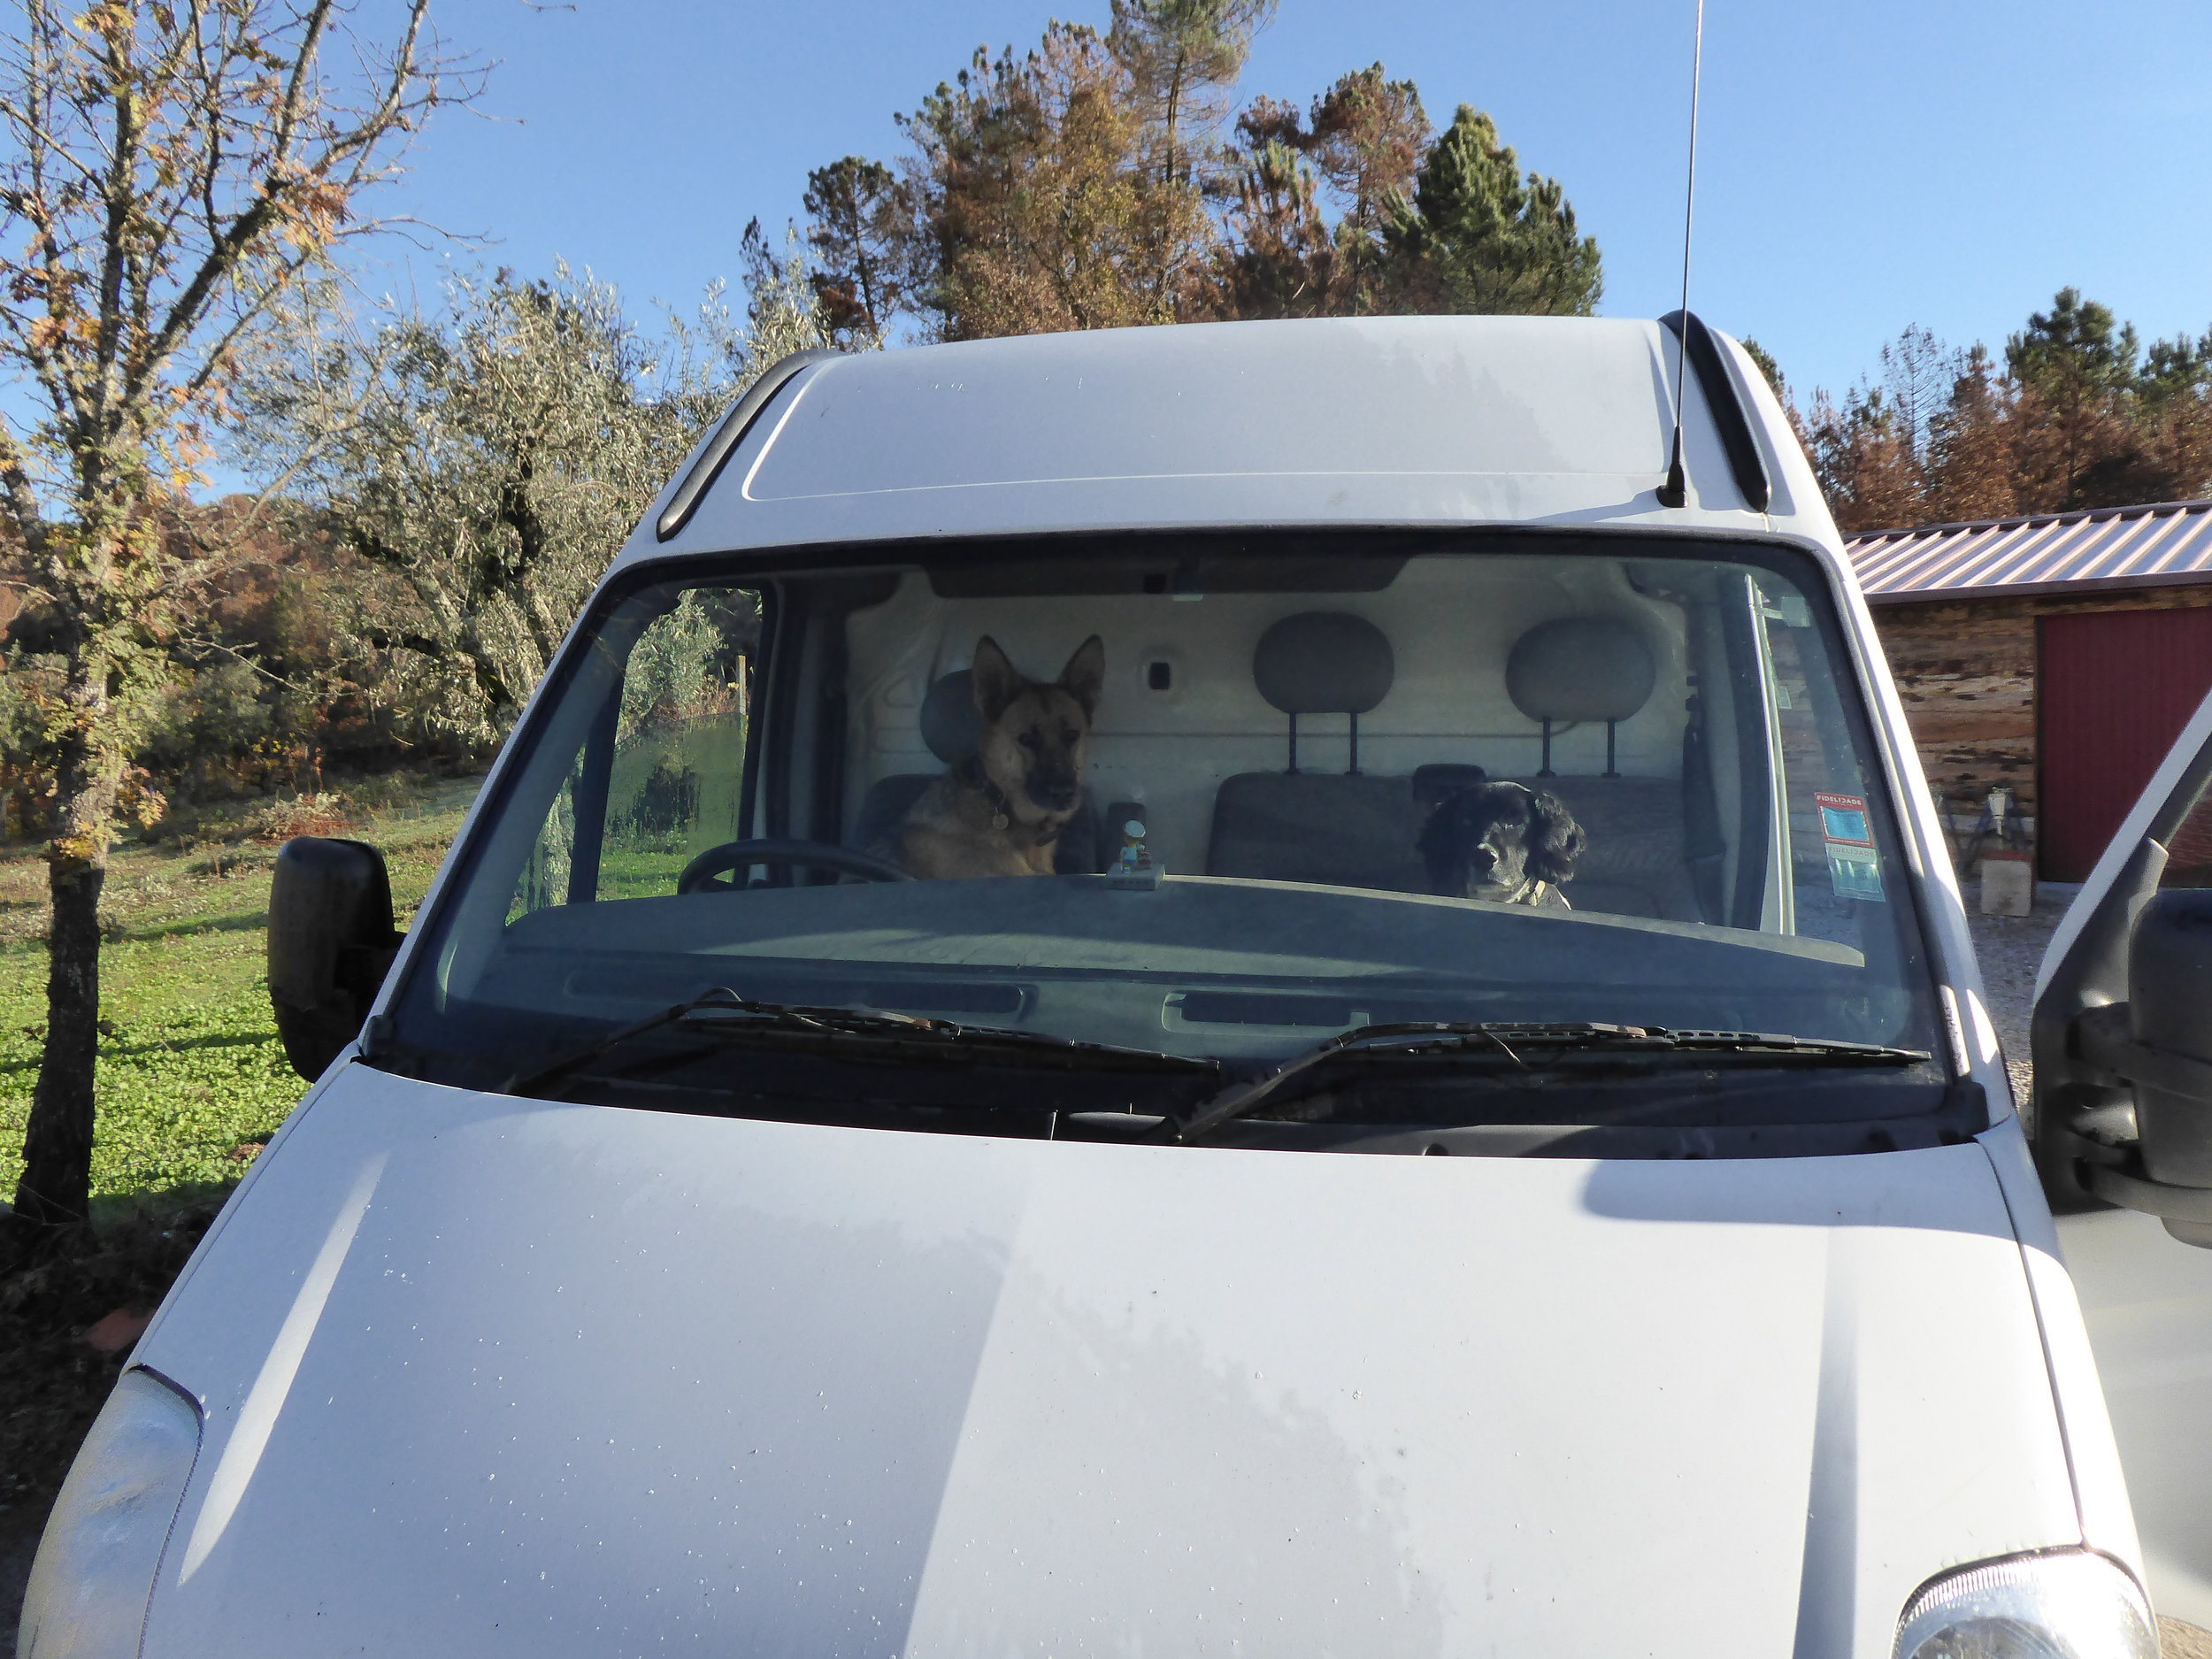 The dogs ready for their day out